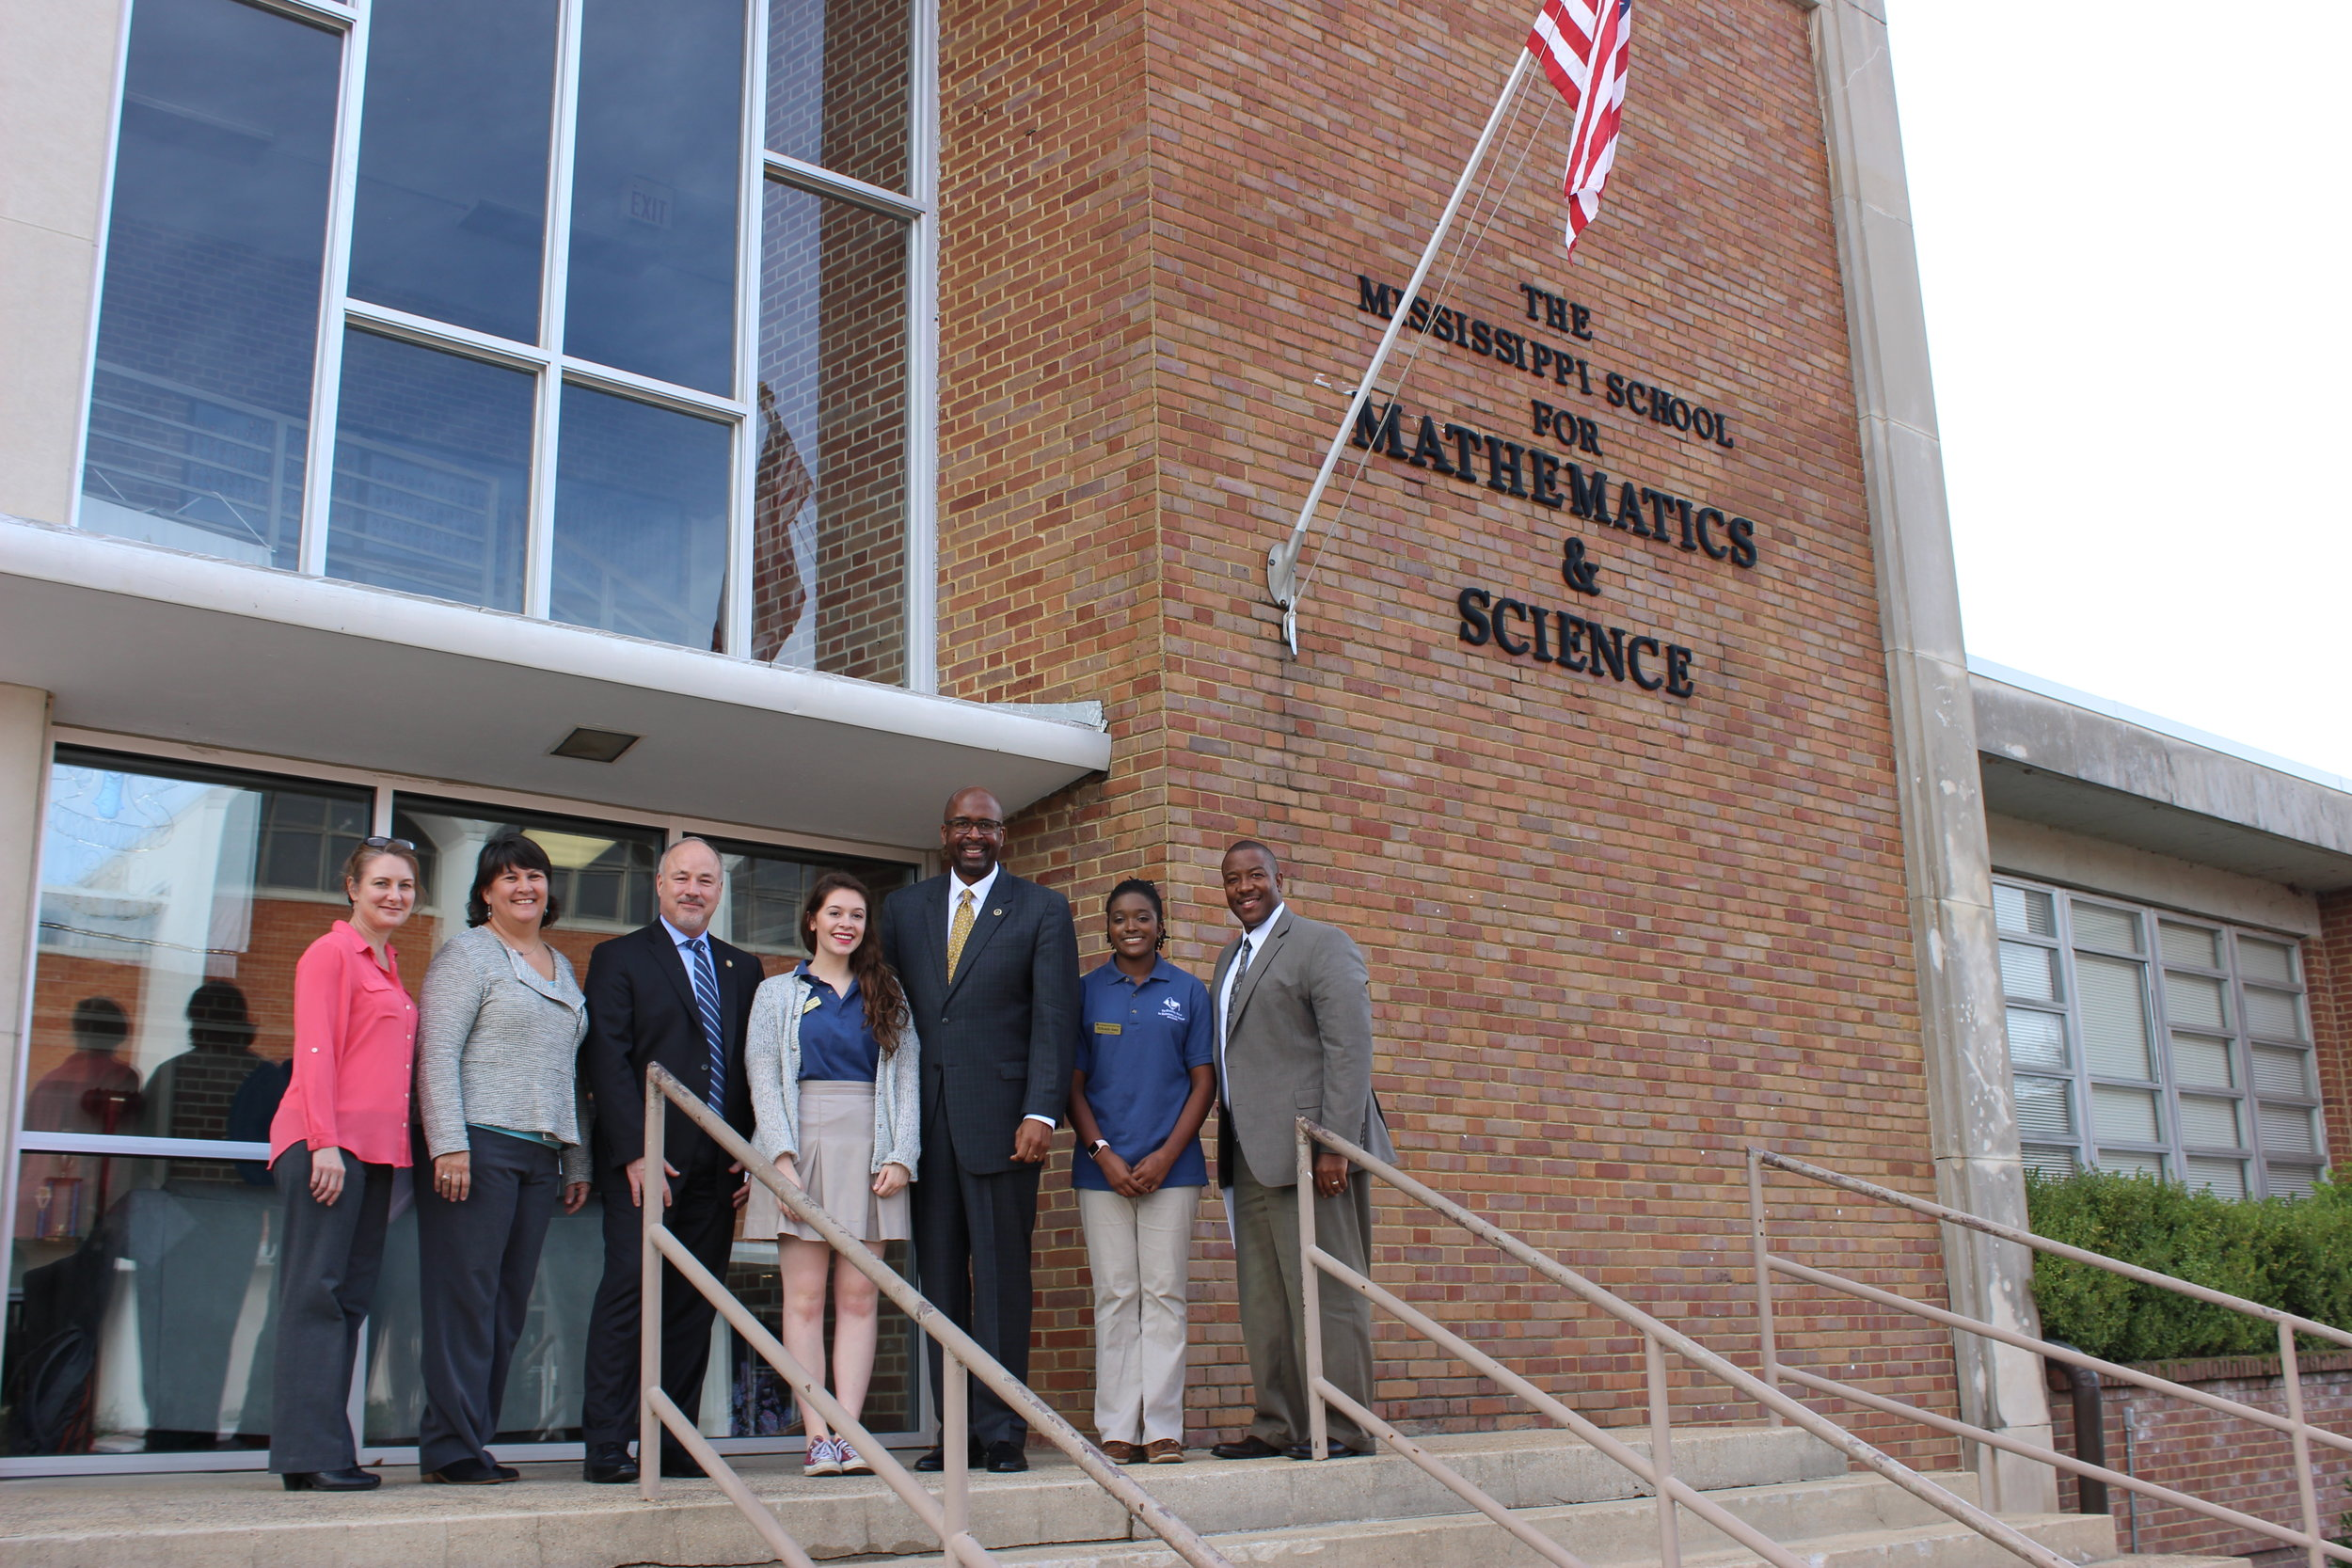 (from left) MSMS Director for Advancement, Dr. Heather Hanna;Director for Academic Affairs, Kelly Brown; USM Provost, Dr. Steven Moser; MSMS student, Claudia Vial; USM President, Dr. Rodney Bennett; MSMS student, McKenzie Jones; and MSMS Executive Director, Dr. Germain McConnell.